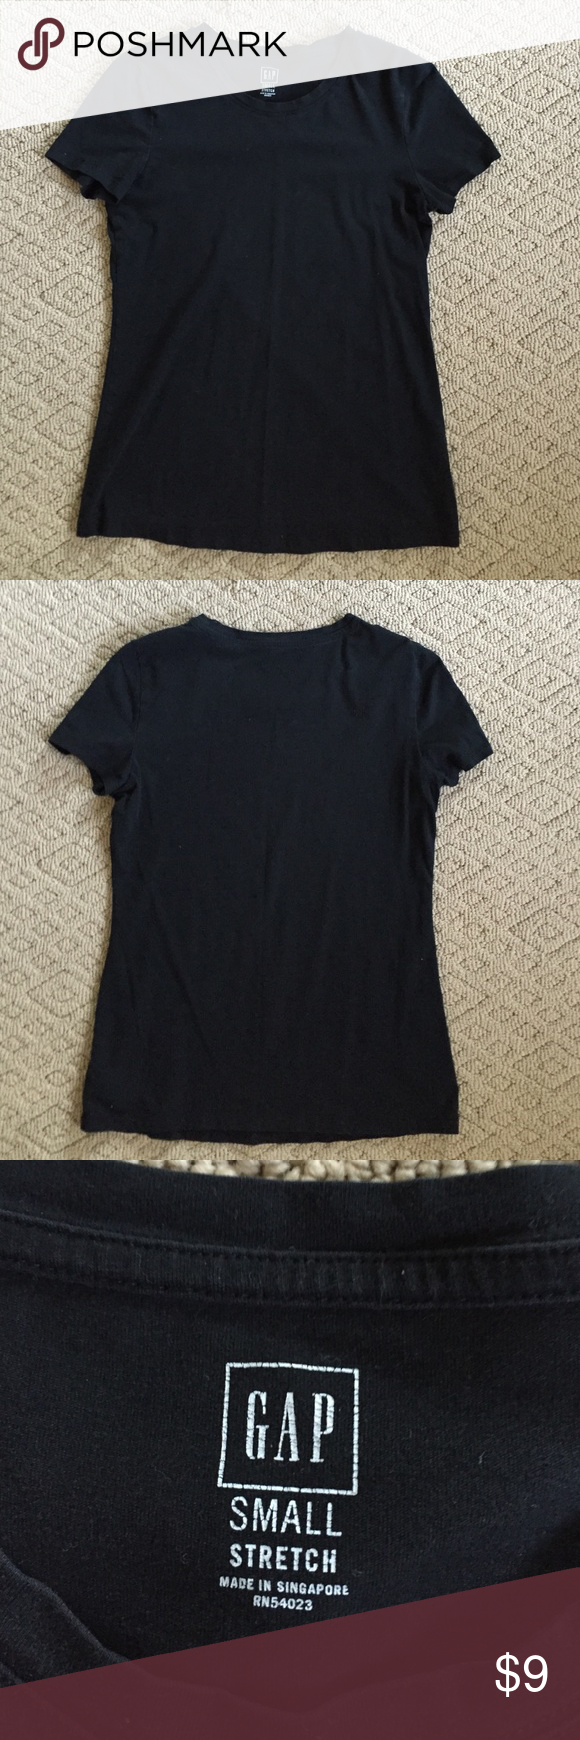 """⚡️SALE⚡️GAP Black Stretch T GAP stretch T-shirt in size Small. Not factory. Great condition. 95% cotton, 5% spandex. Approx 24"""" down center, 16"""" armpit to armpit. GAP Tops Tees - Short Sleeve"""